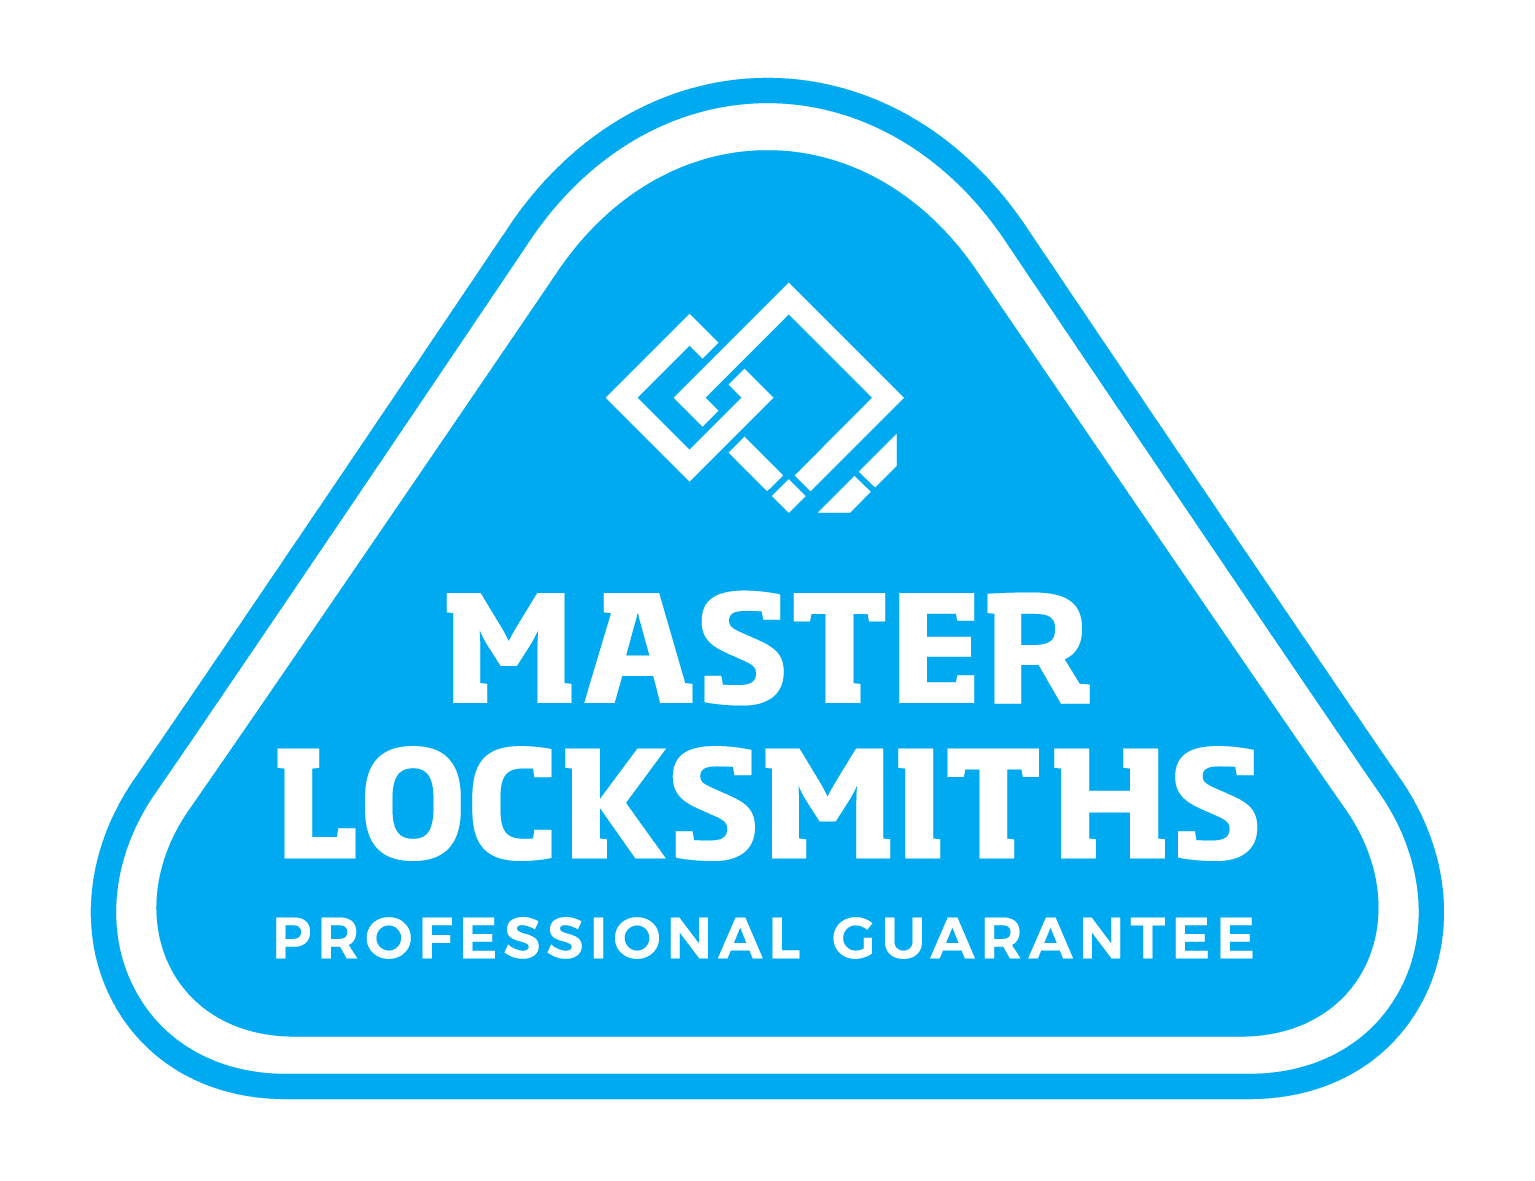 The master locksmiths logo used for websites of companies that have this qualification.